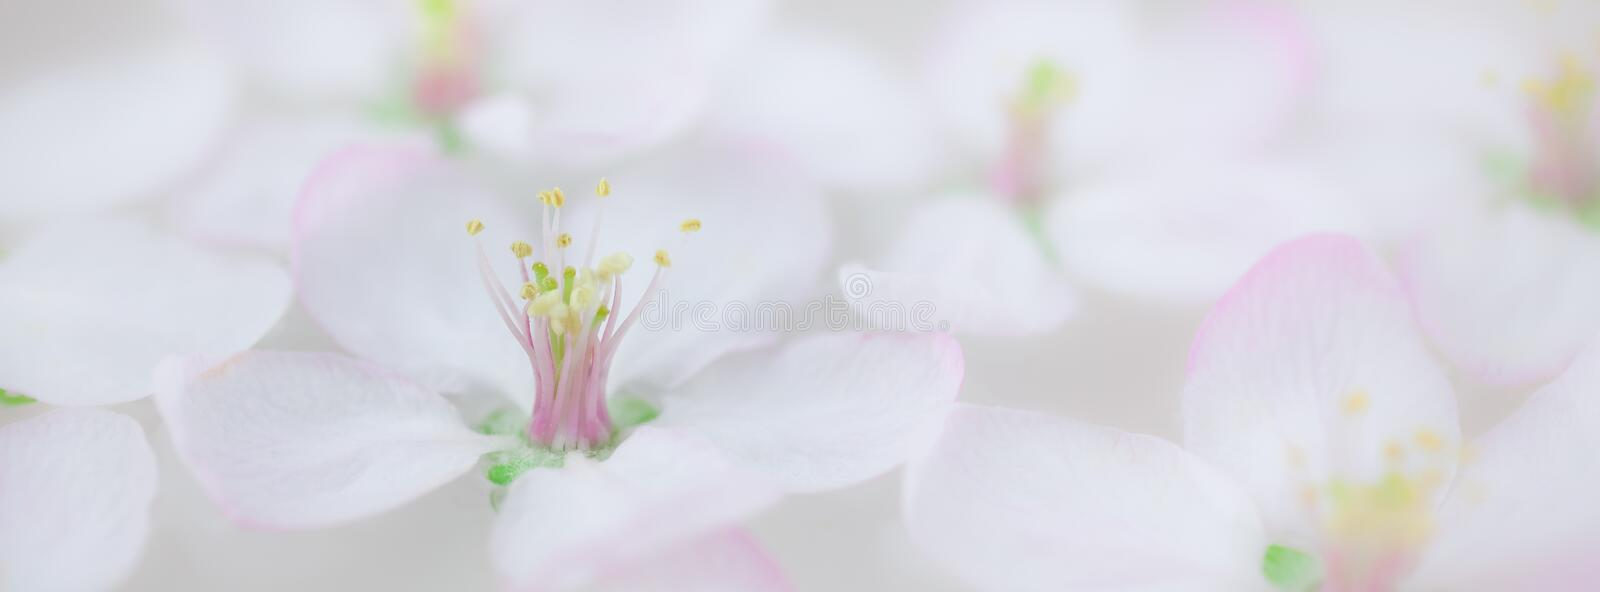 White flowers floating in water. Close up of white spring blossoming apple tree flowers floating in aroma bowl of water. Spa and wellness concept. Long wide royalty free stock photo